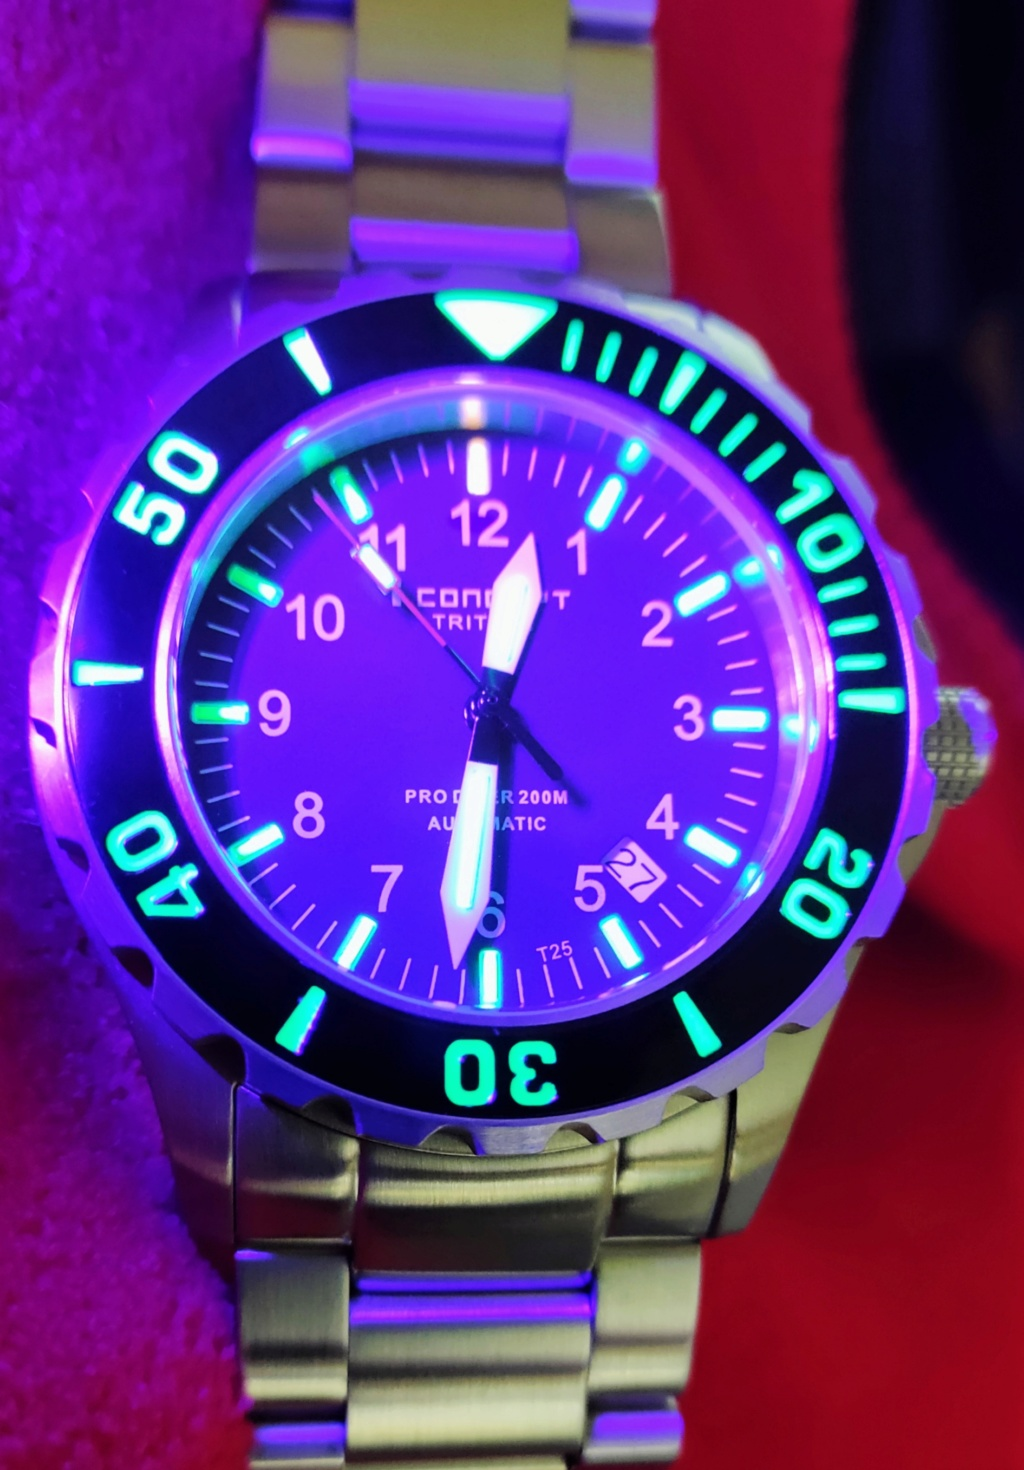 I.Concept Tritium Dive watch Img_2151